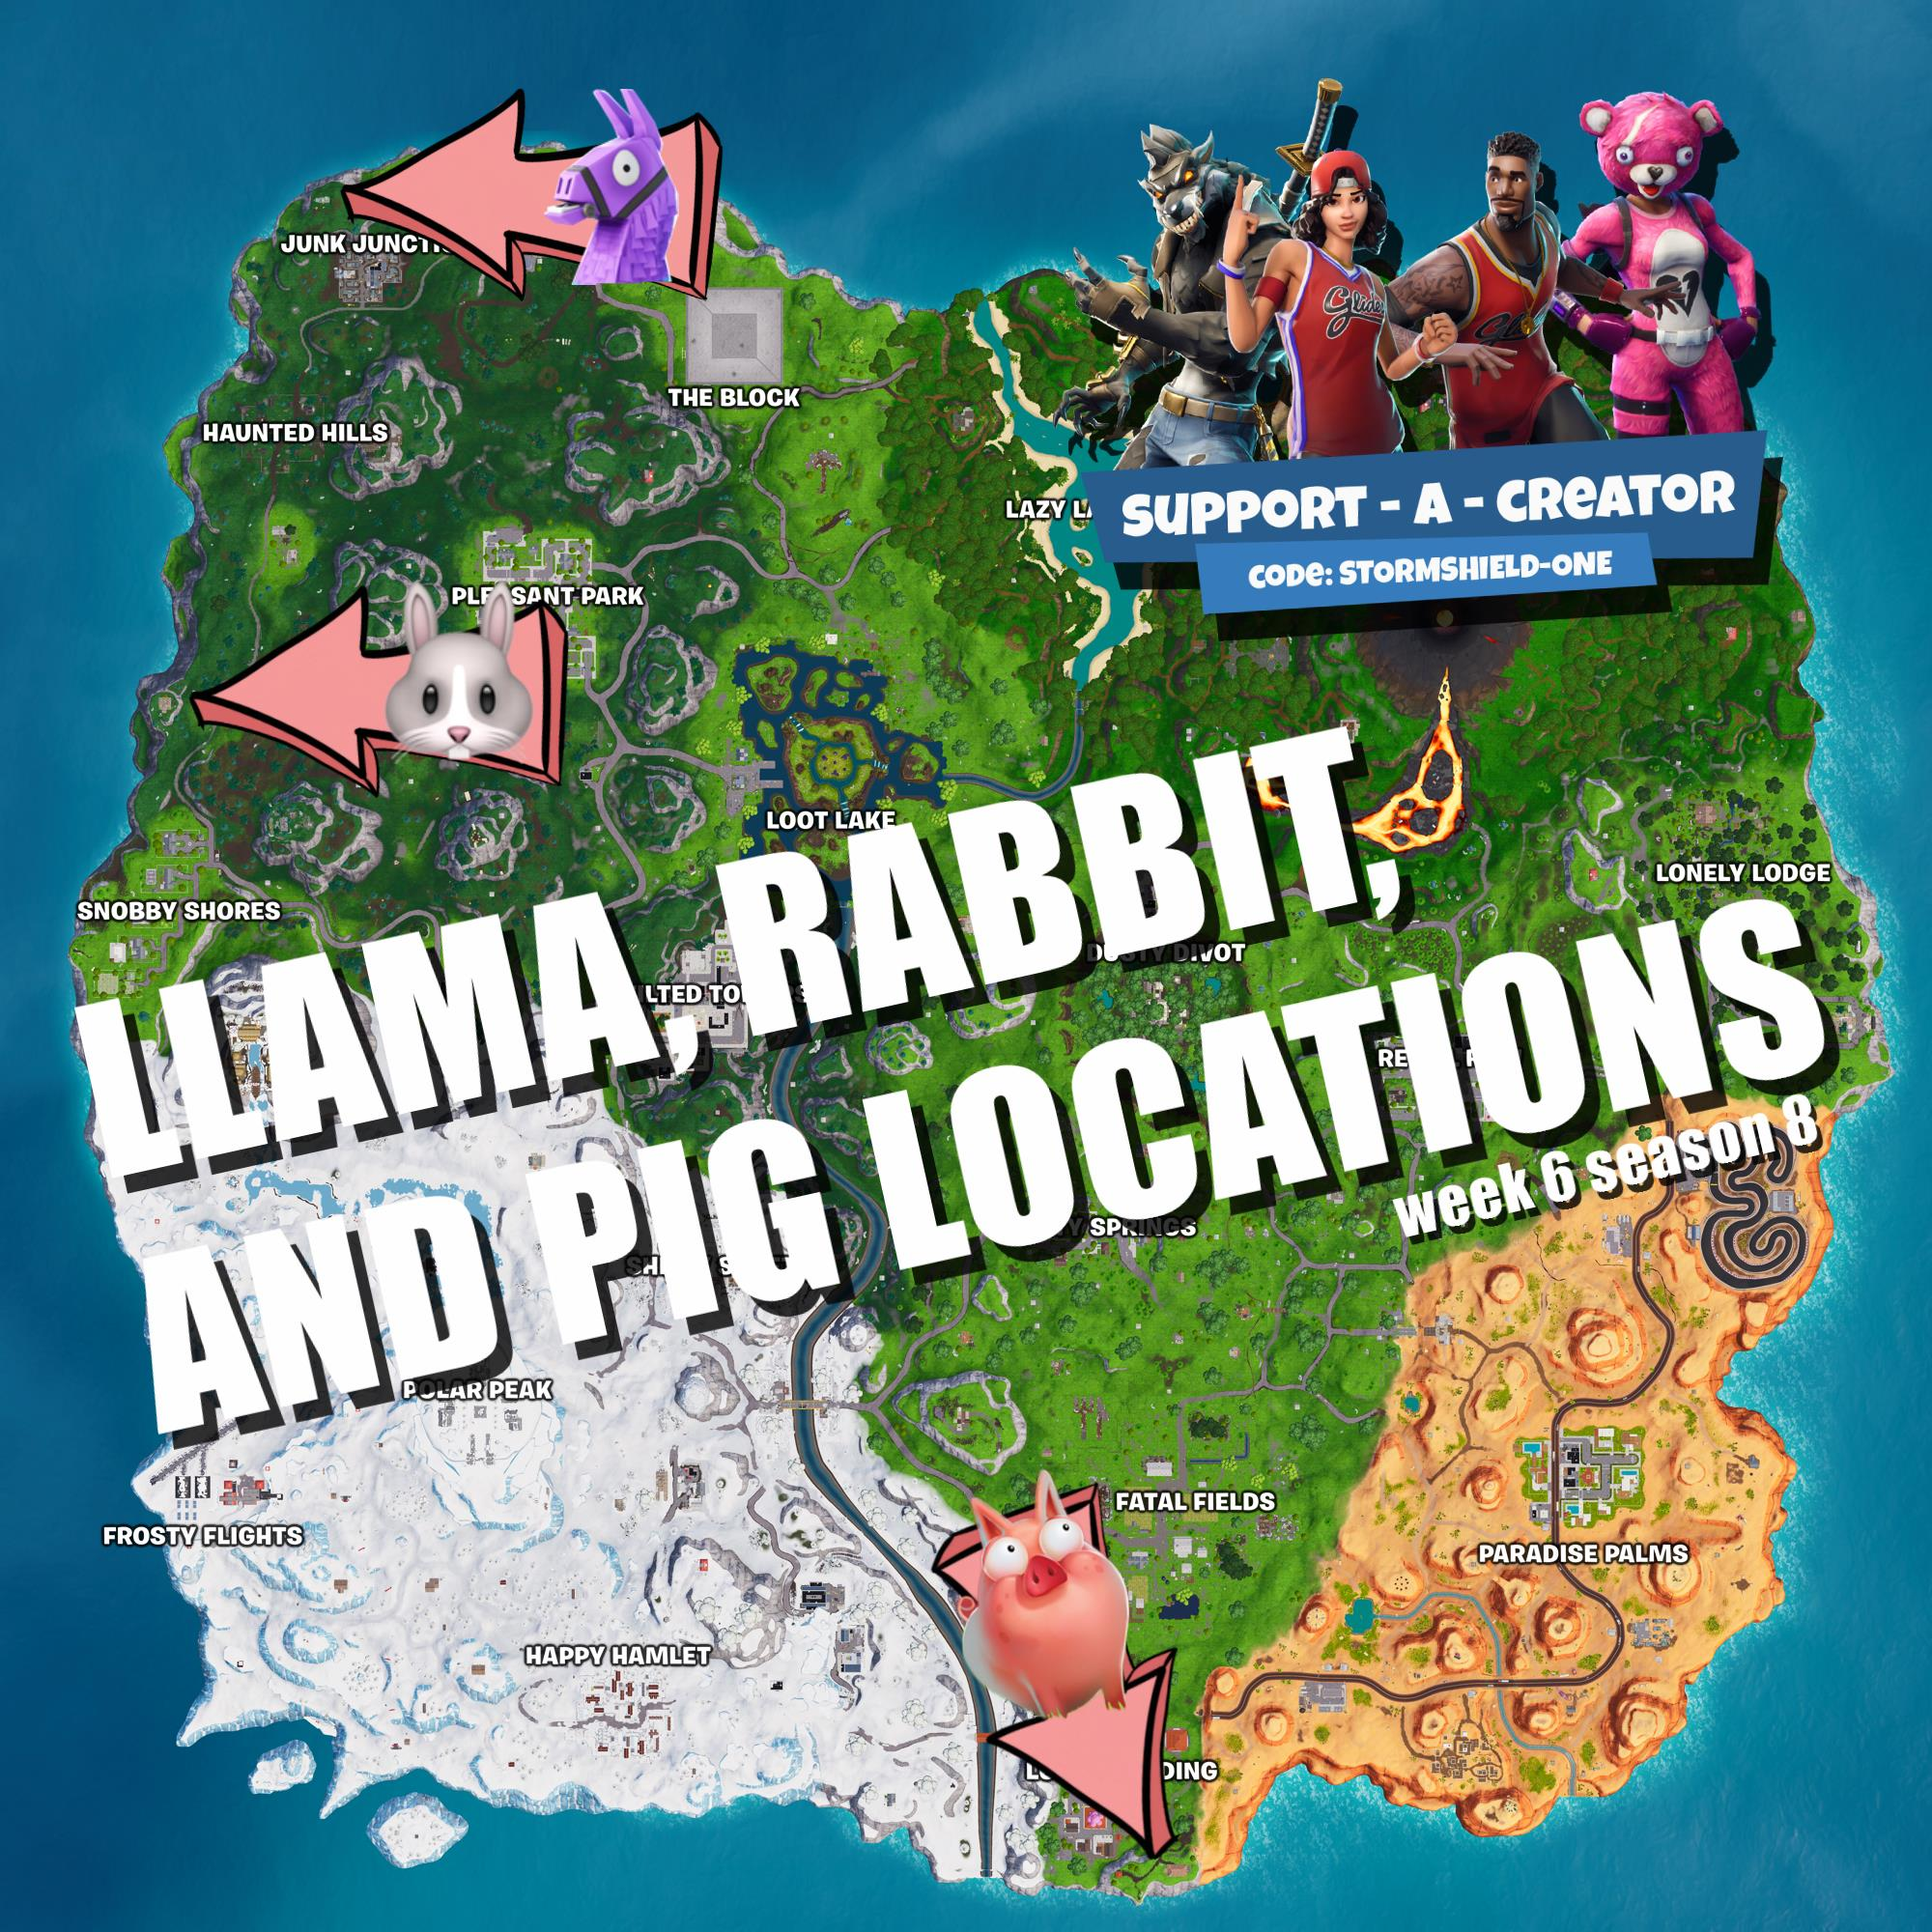 Wooden Rabbit Stone Pig Metal Llama Fortnite Locations Fortnite